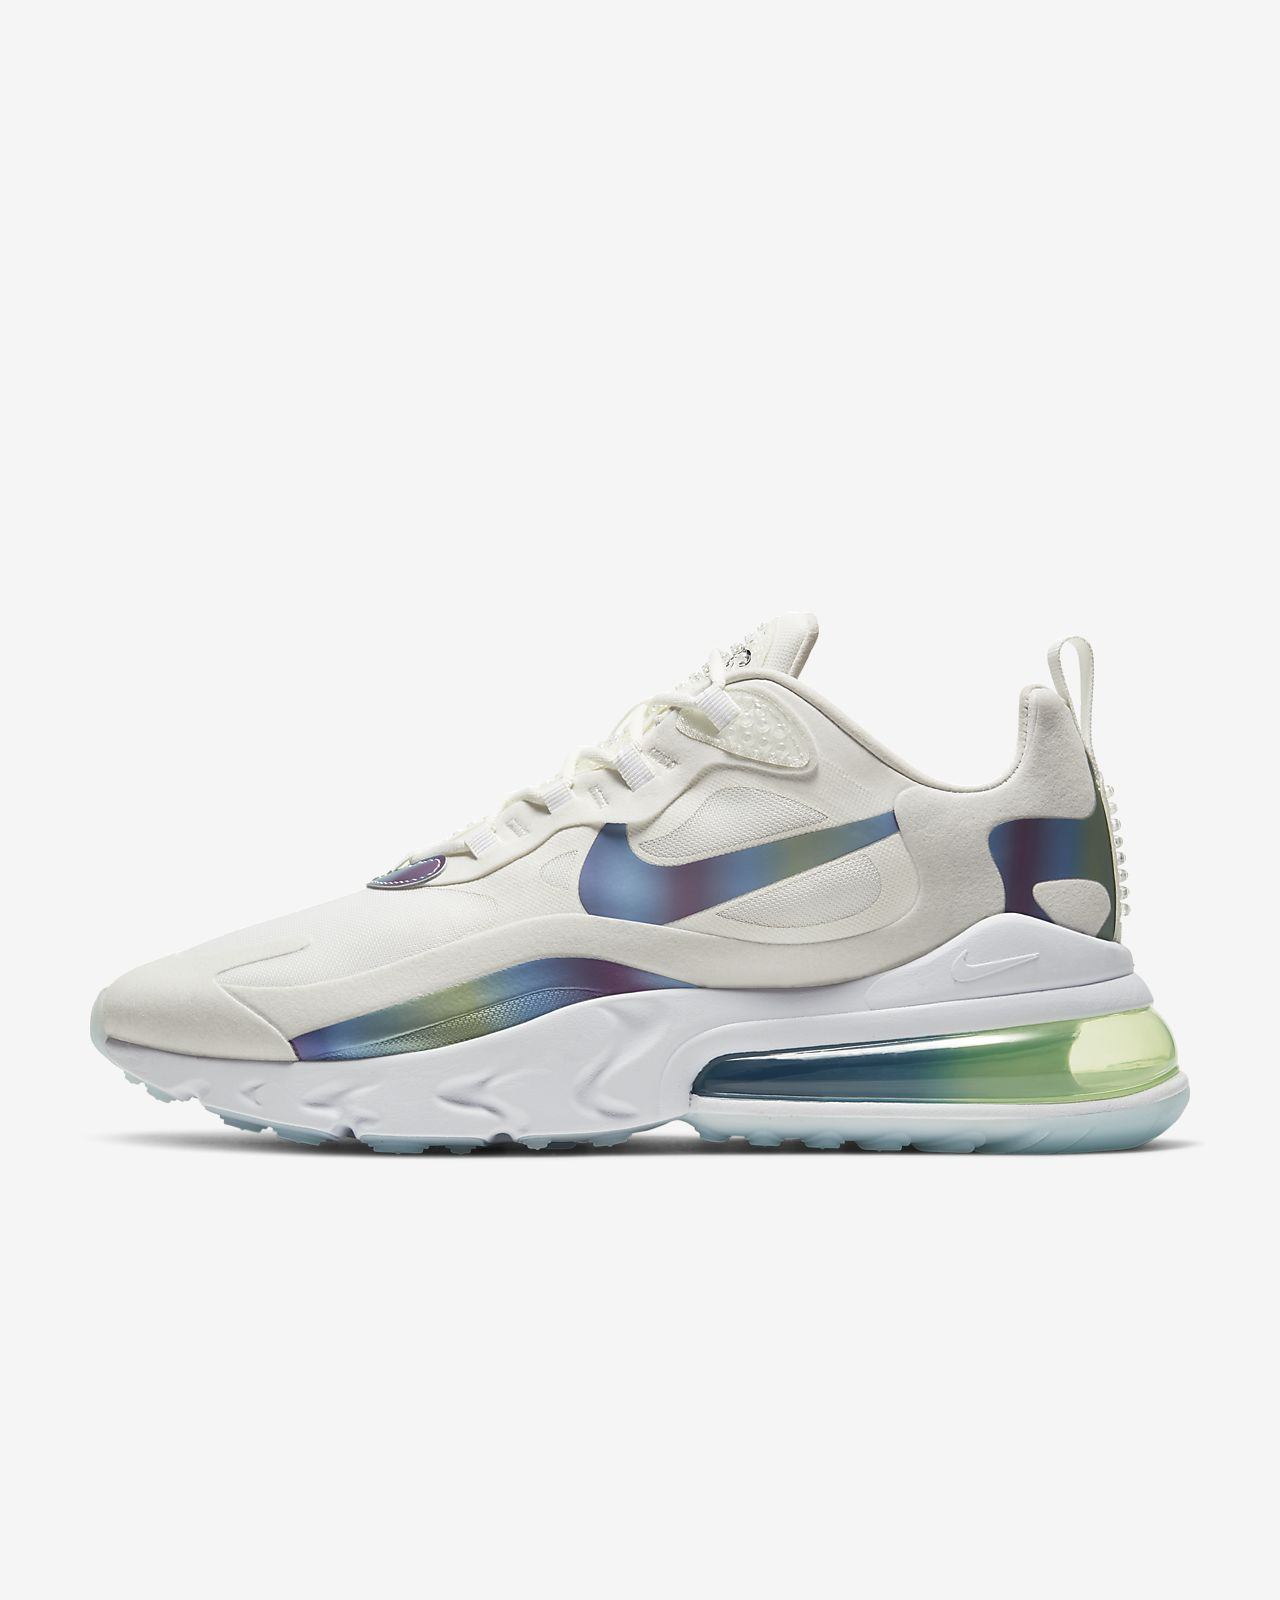 burbuja Comprimido celebracion  NIKE Official]Nike Air Max 270 React Men's Shoes.Online store (mail order  site)